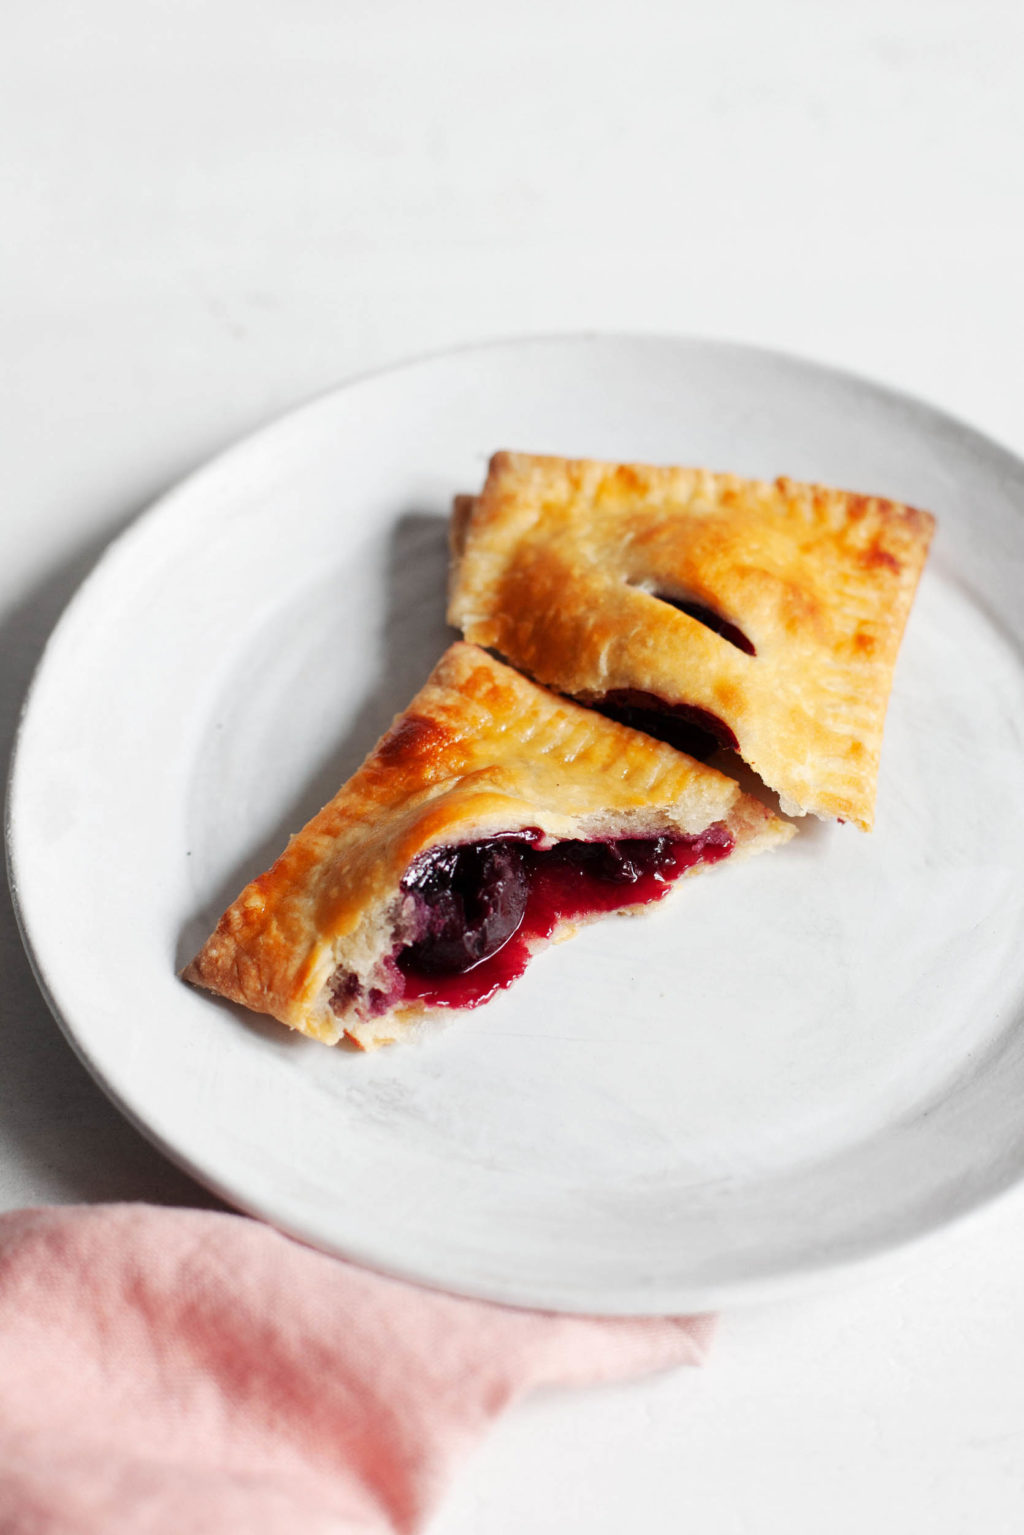 A vegan sweet cherry hand pie, freshly baked and broken apart for eating, rests on a dessert plate with a pink napkin nearby.